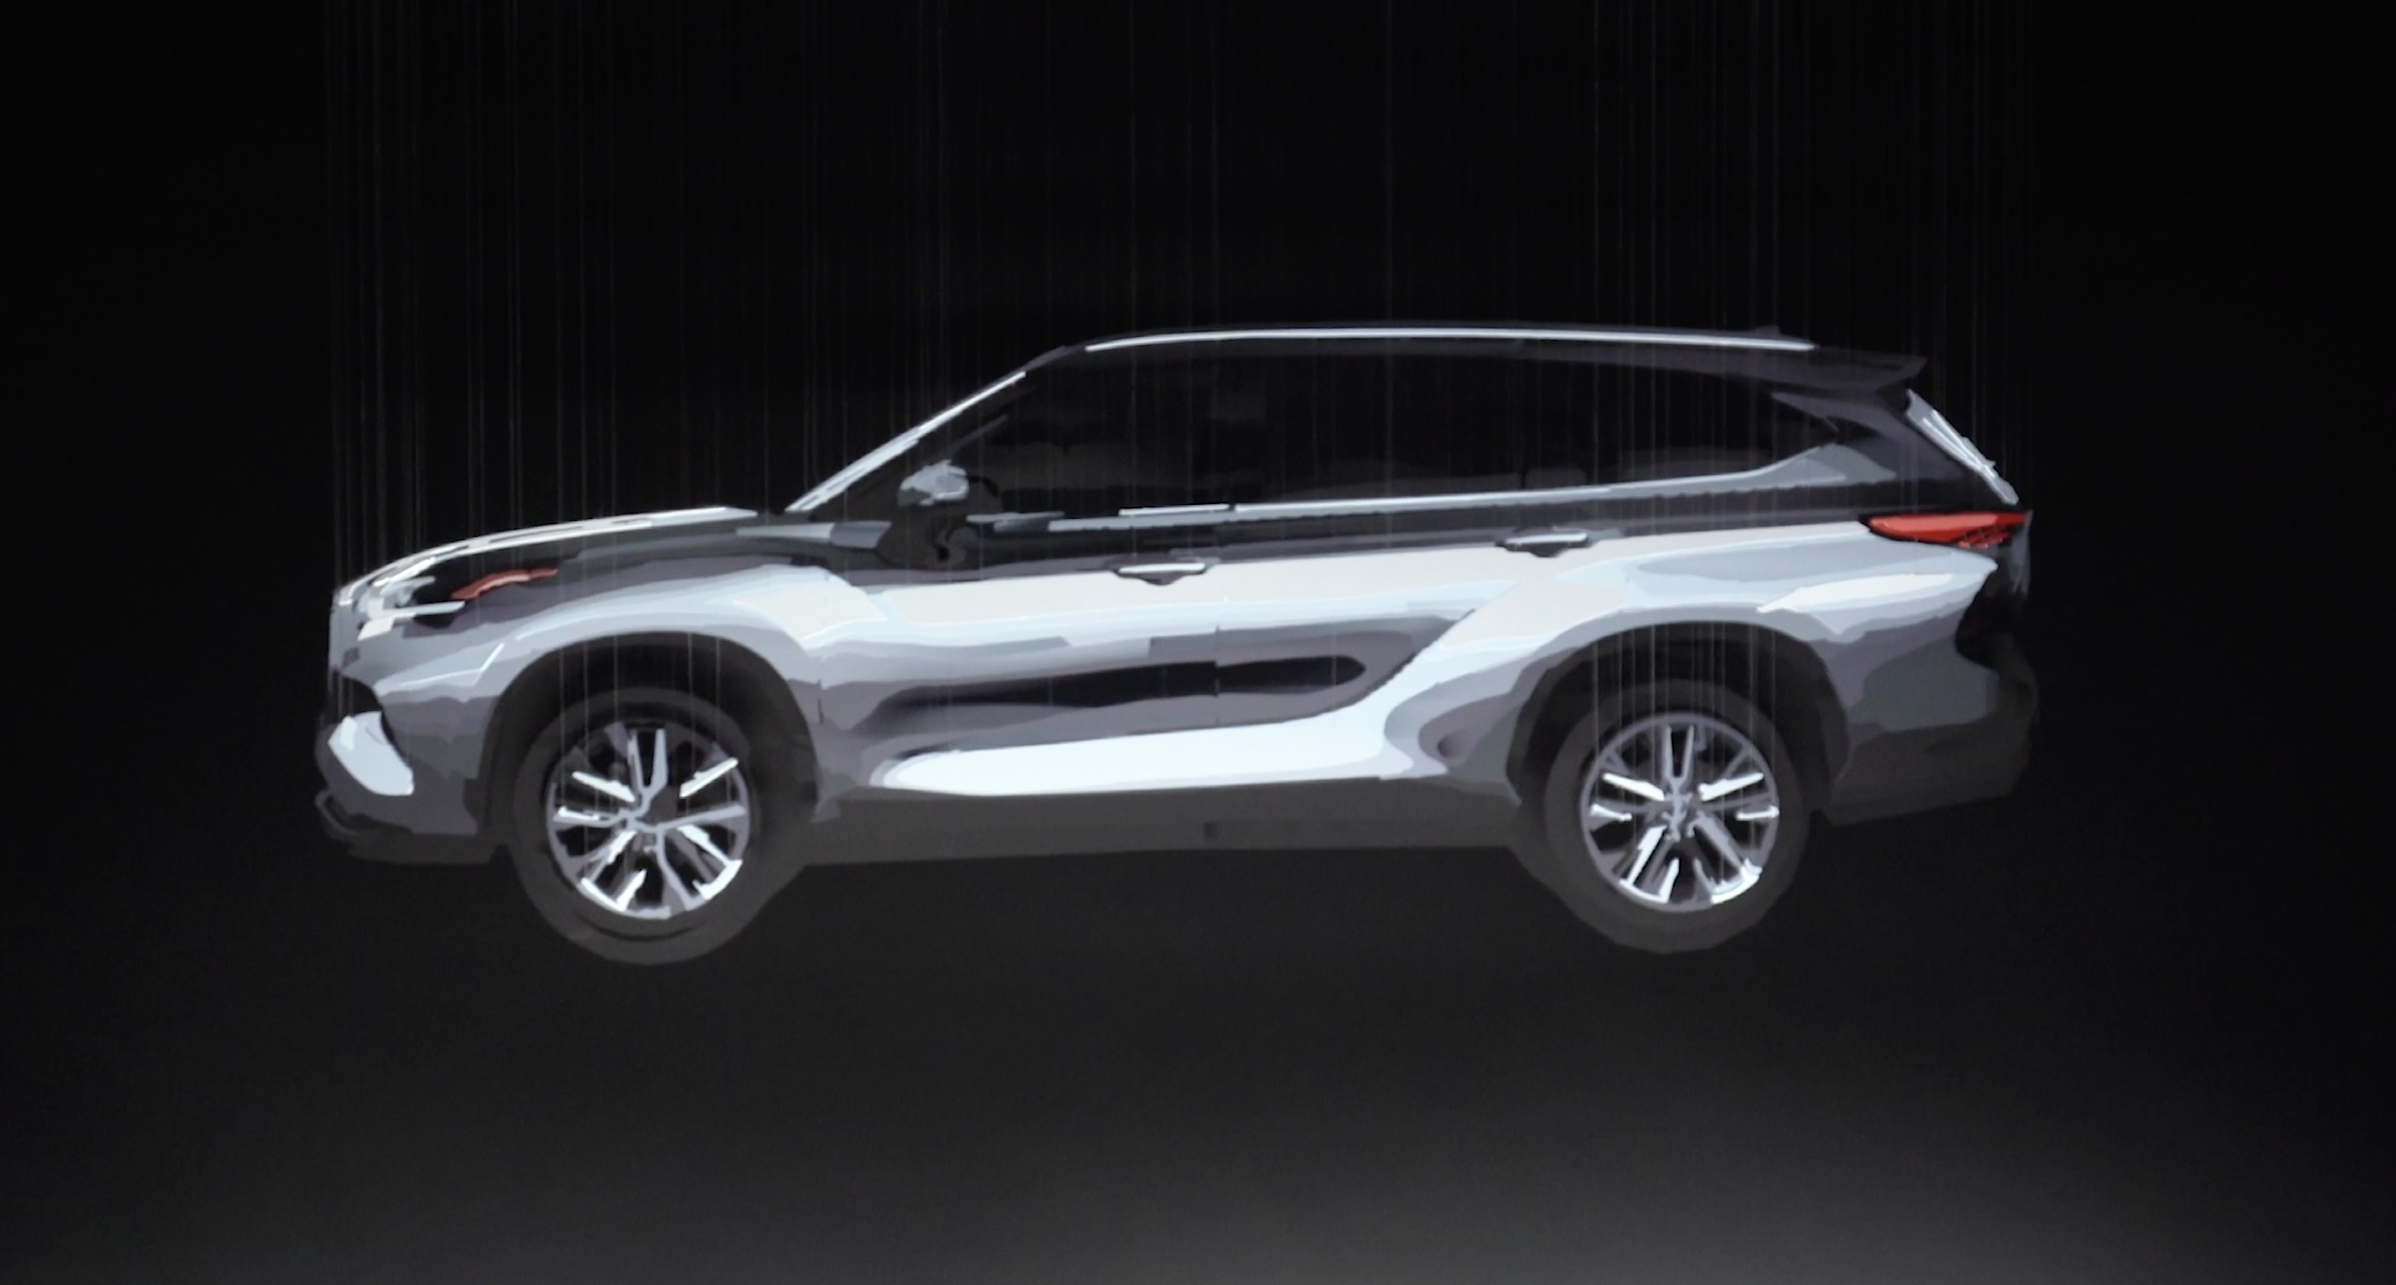 53 All New Toyota Outlander 2020 Engine